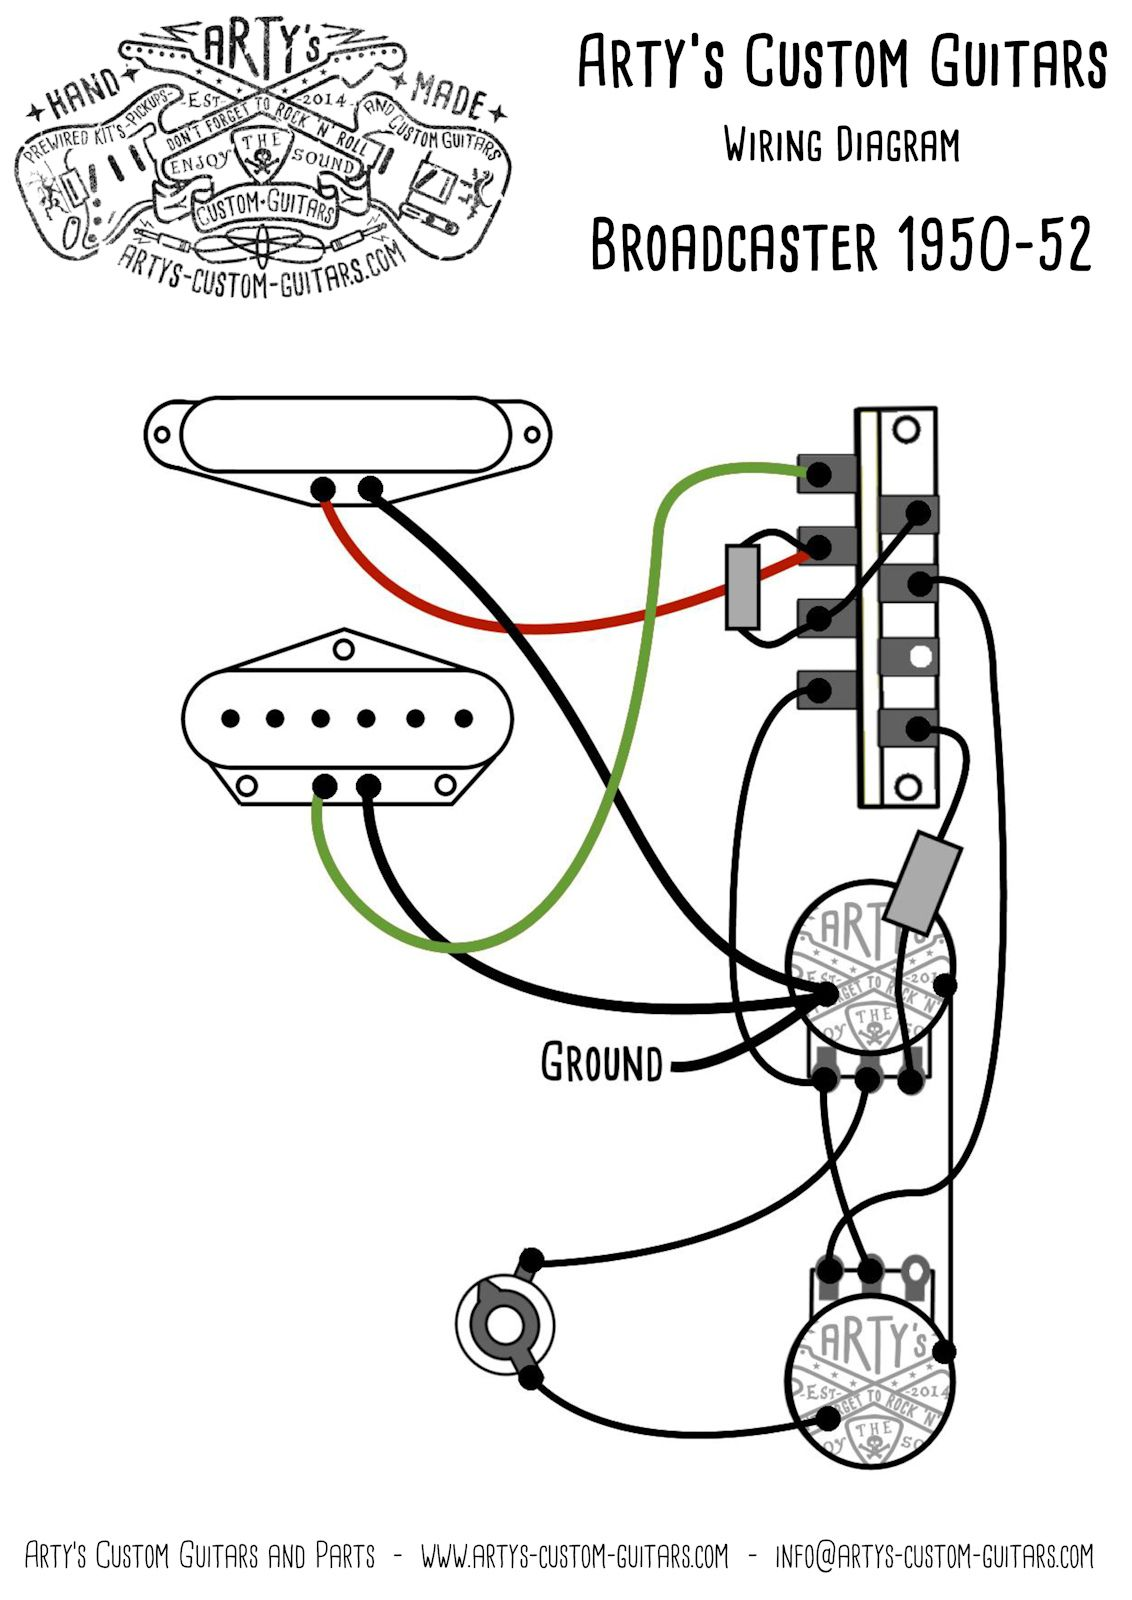 small resolution of arty s custom guitars broadcaster nocaster 1950 52 vintage pre wired prewired kit wiring assembly harness artys tele telecaster